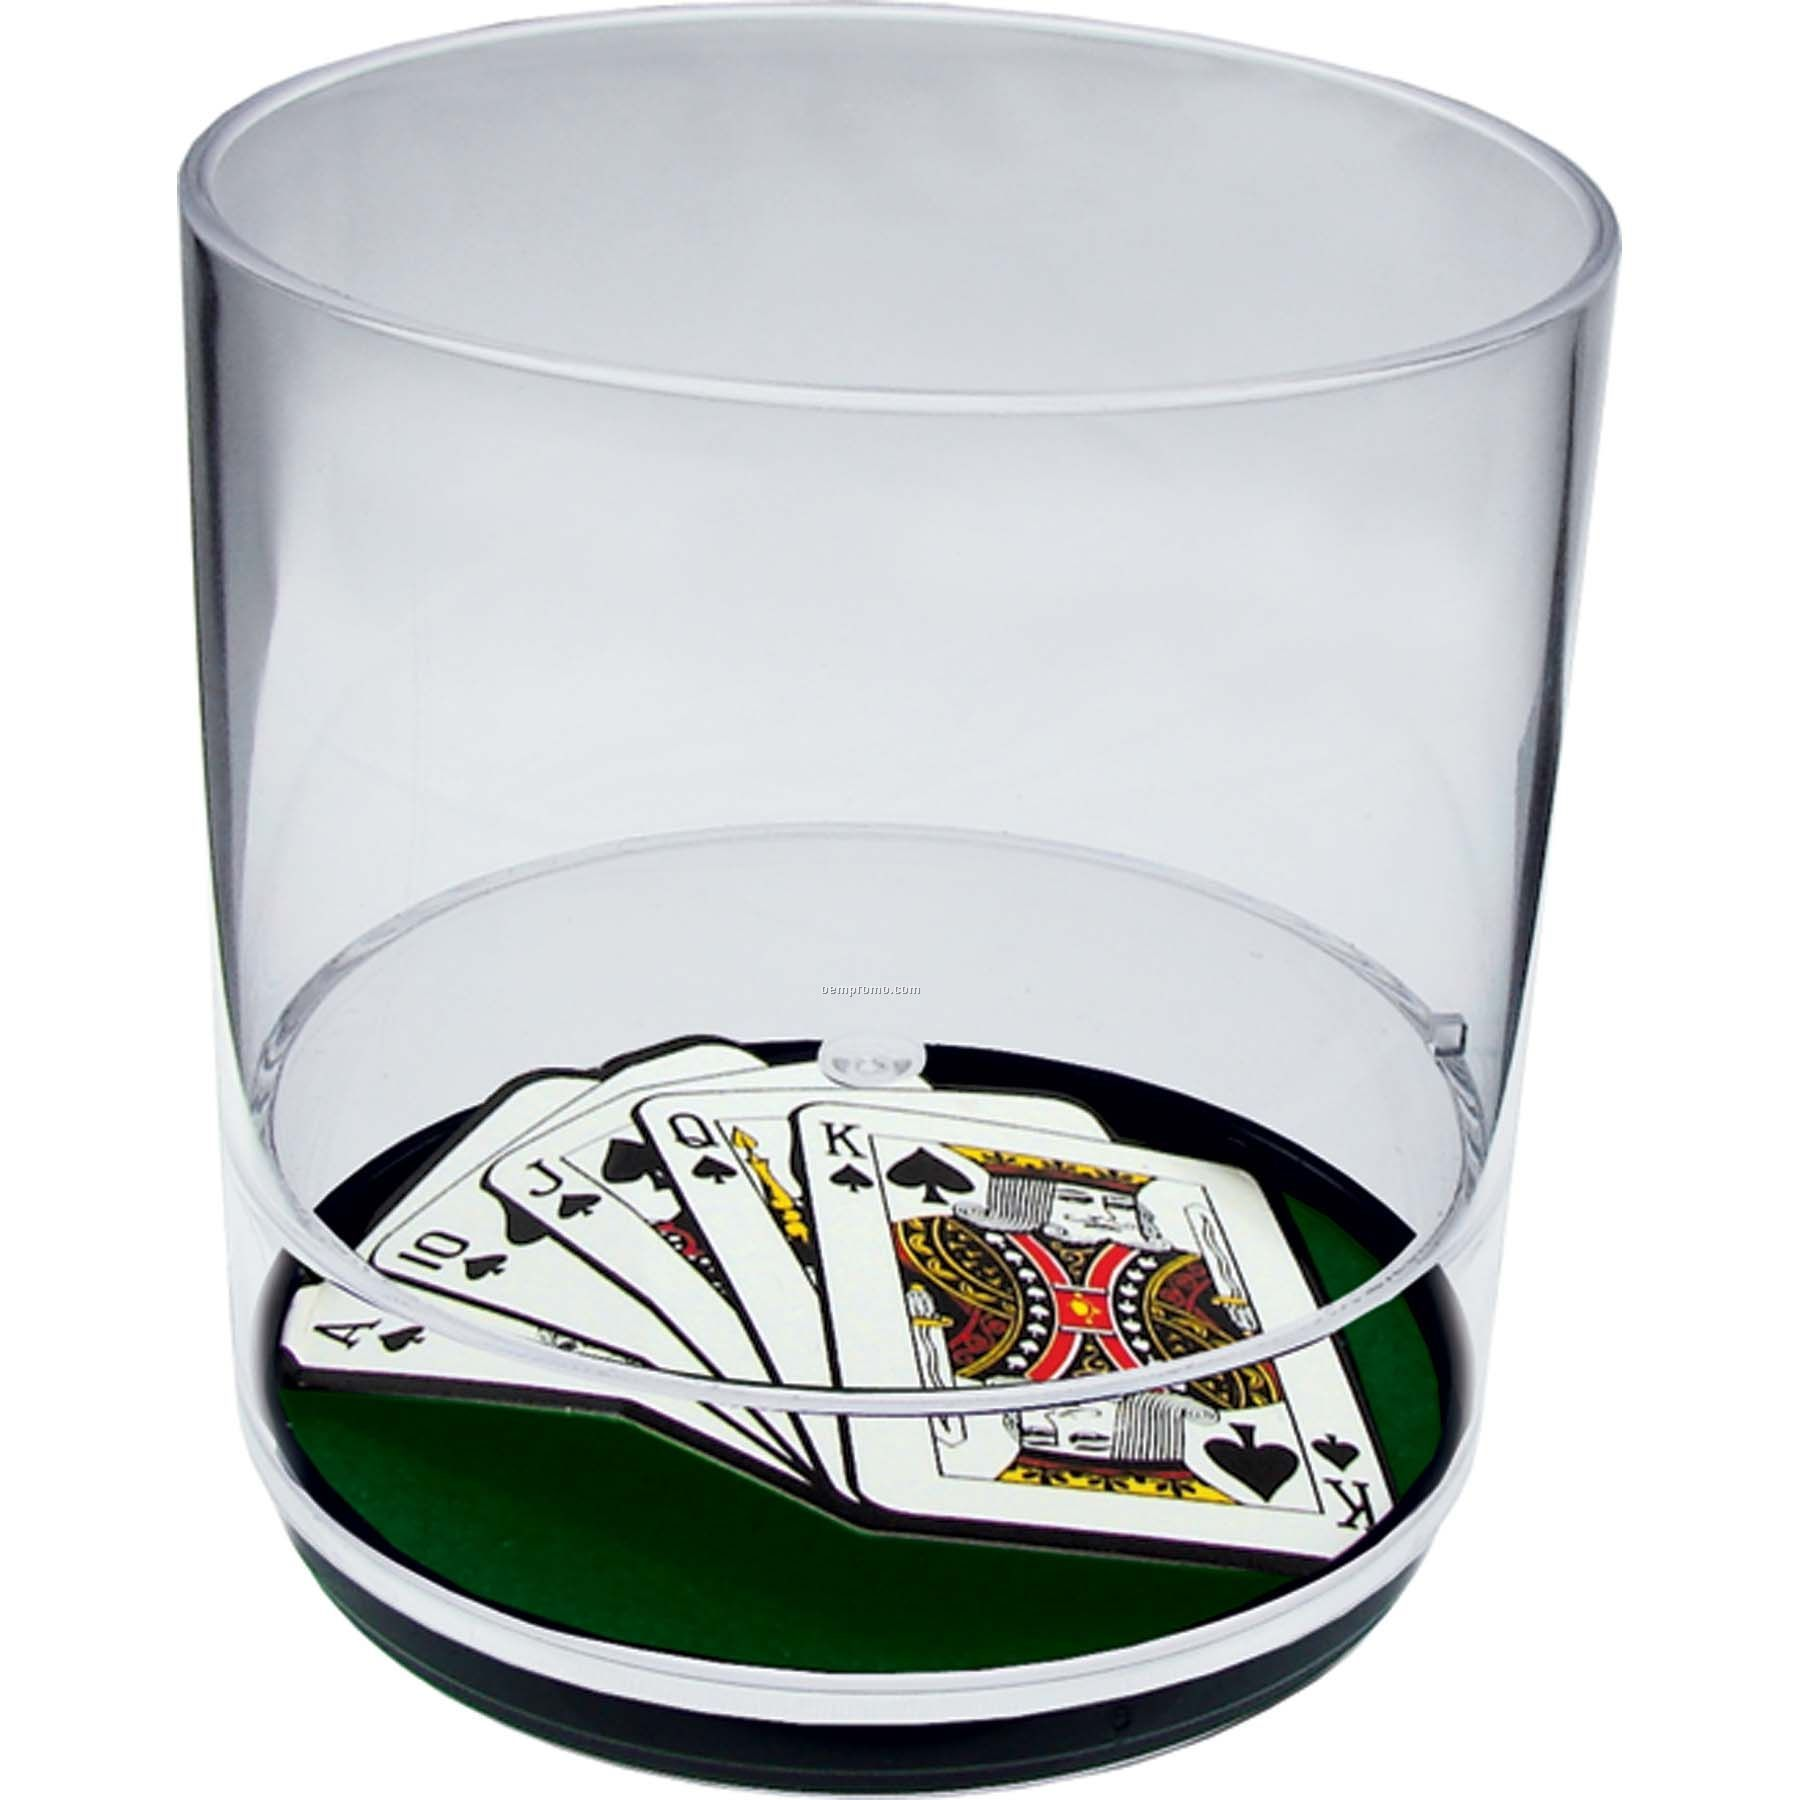 Royal Flush 12 Oz. Compartment Tumbler